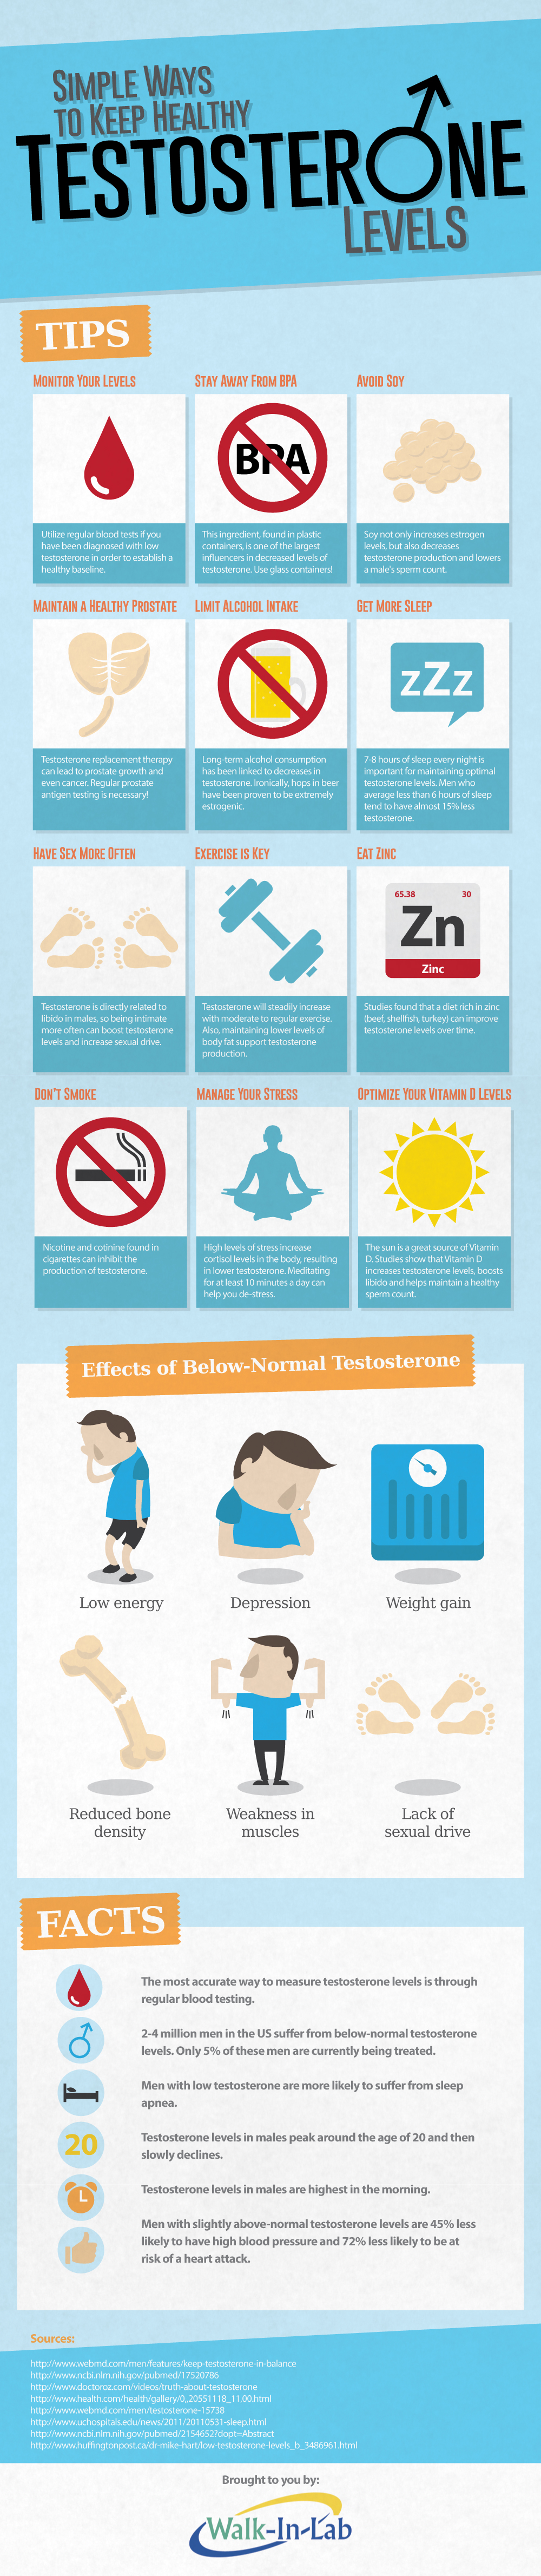 Simple Ways to Keep Healthy Testosterone Levels